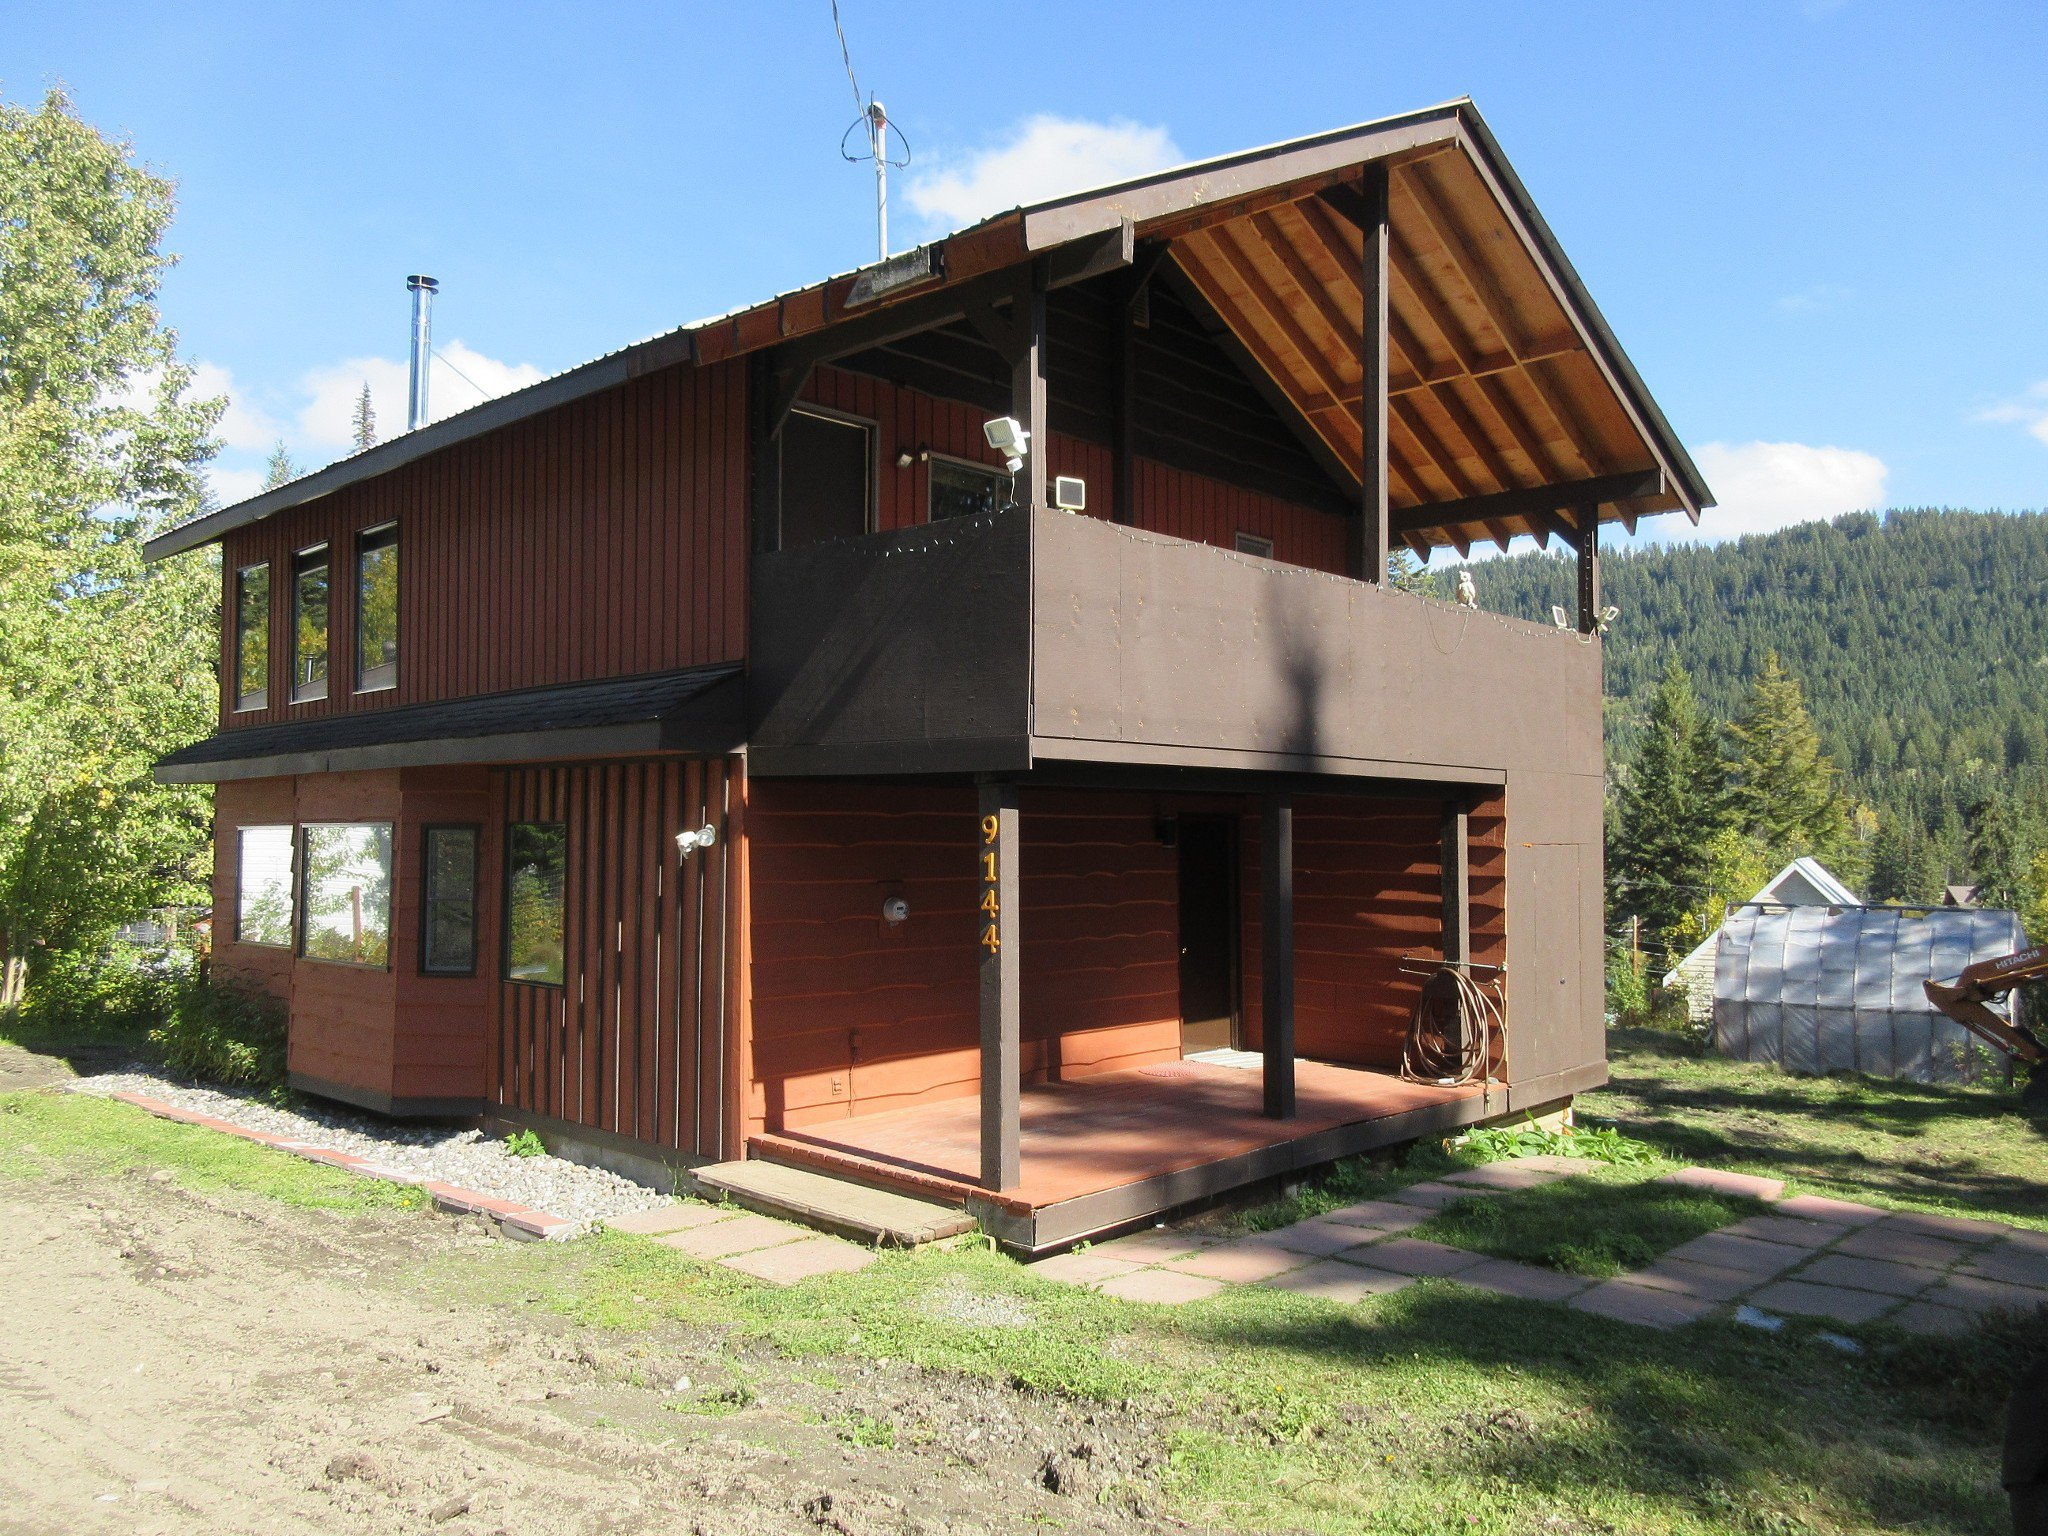 Main Photo: 9144 Knouff Lake Road in Kamloops: House for sale (Out of Town)  : MLS®# MLSR153708